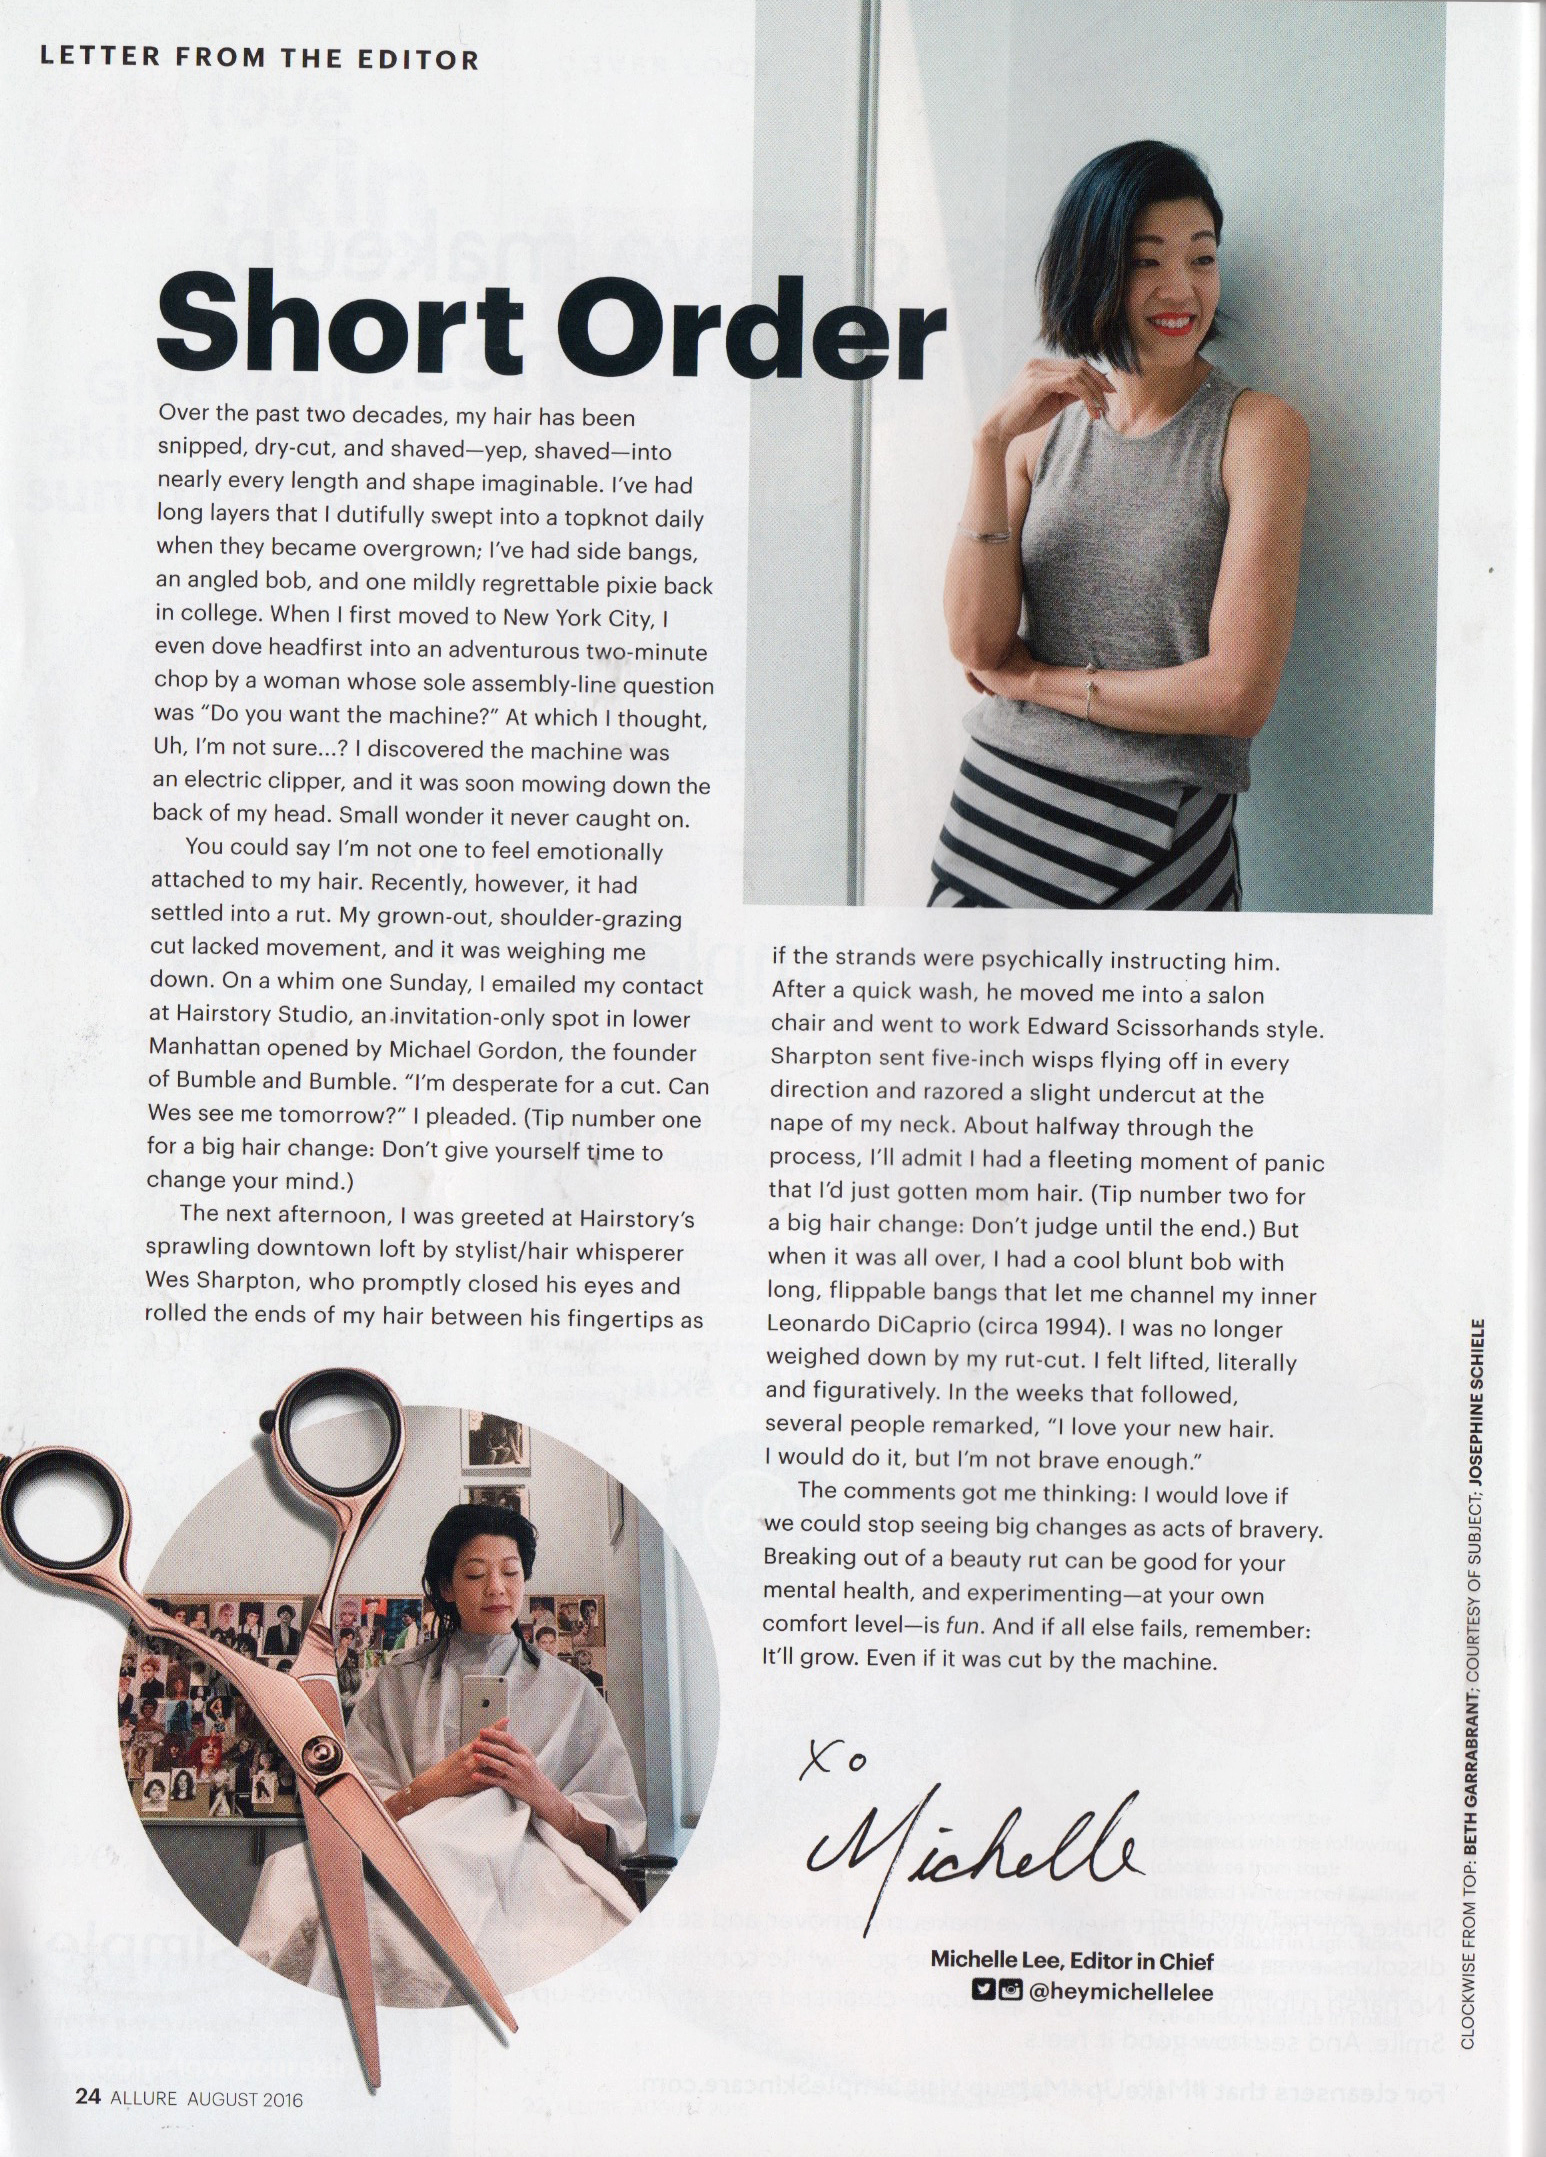 Allure August Letter from the Editor.jpeg